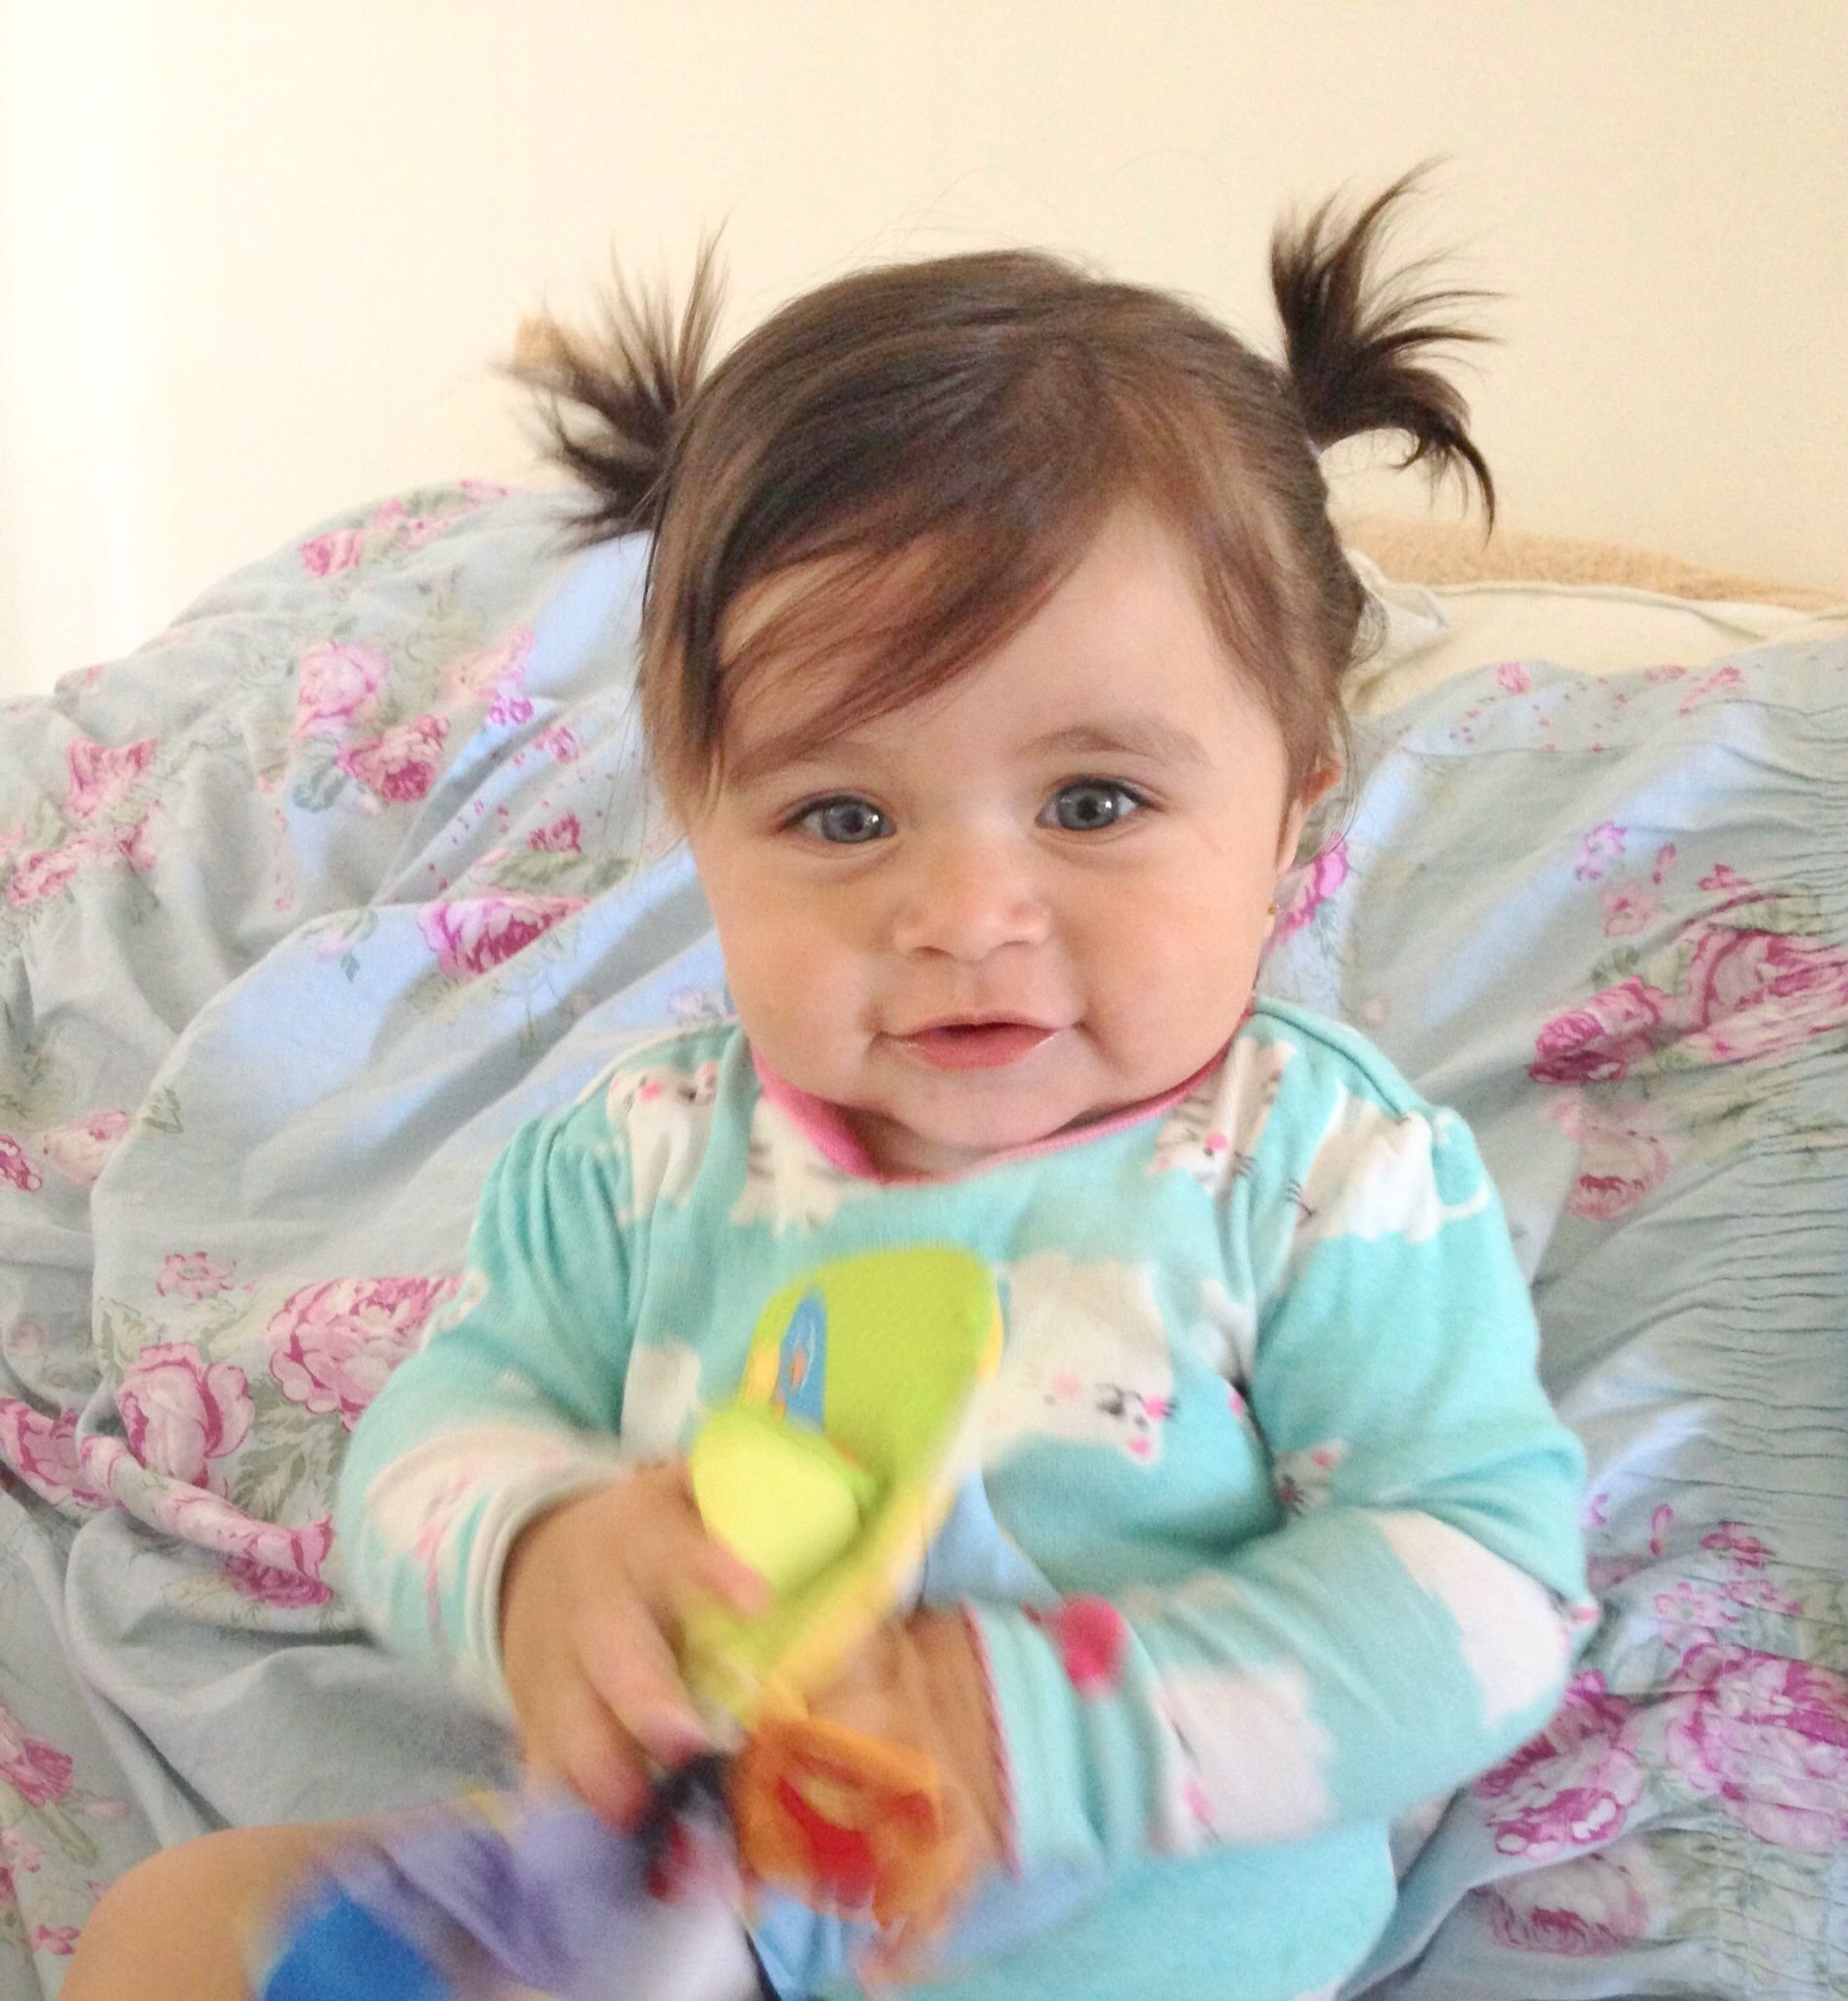 New Baby Girl Hair Dos Ponytails Cute Baby Stuff D Baby Ideas With Pictures